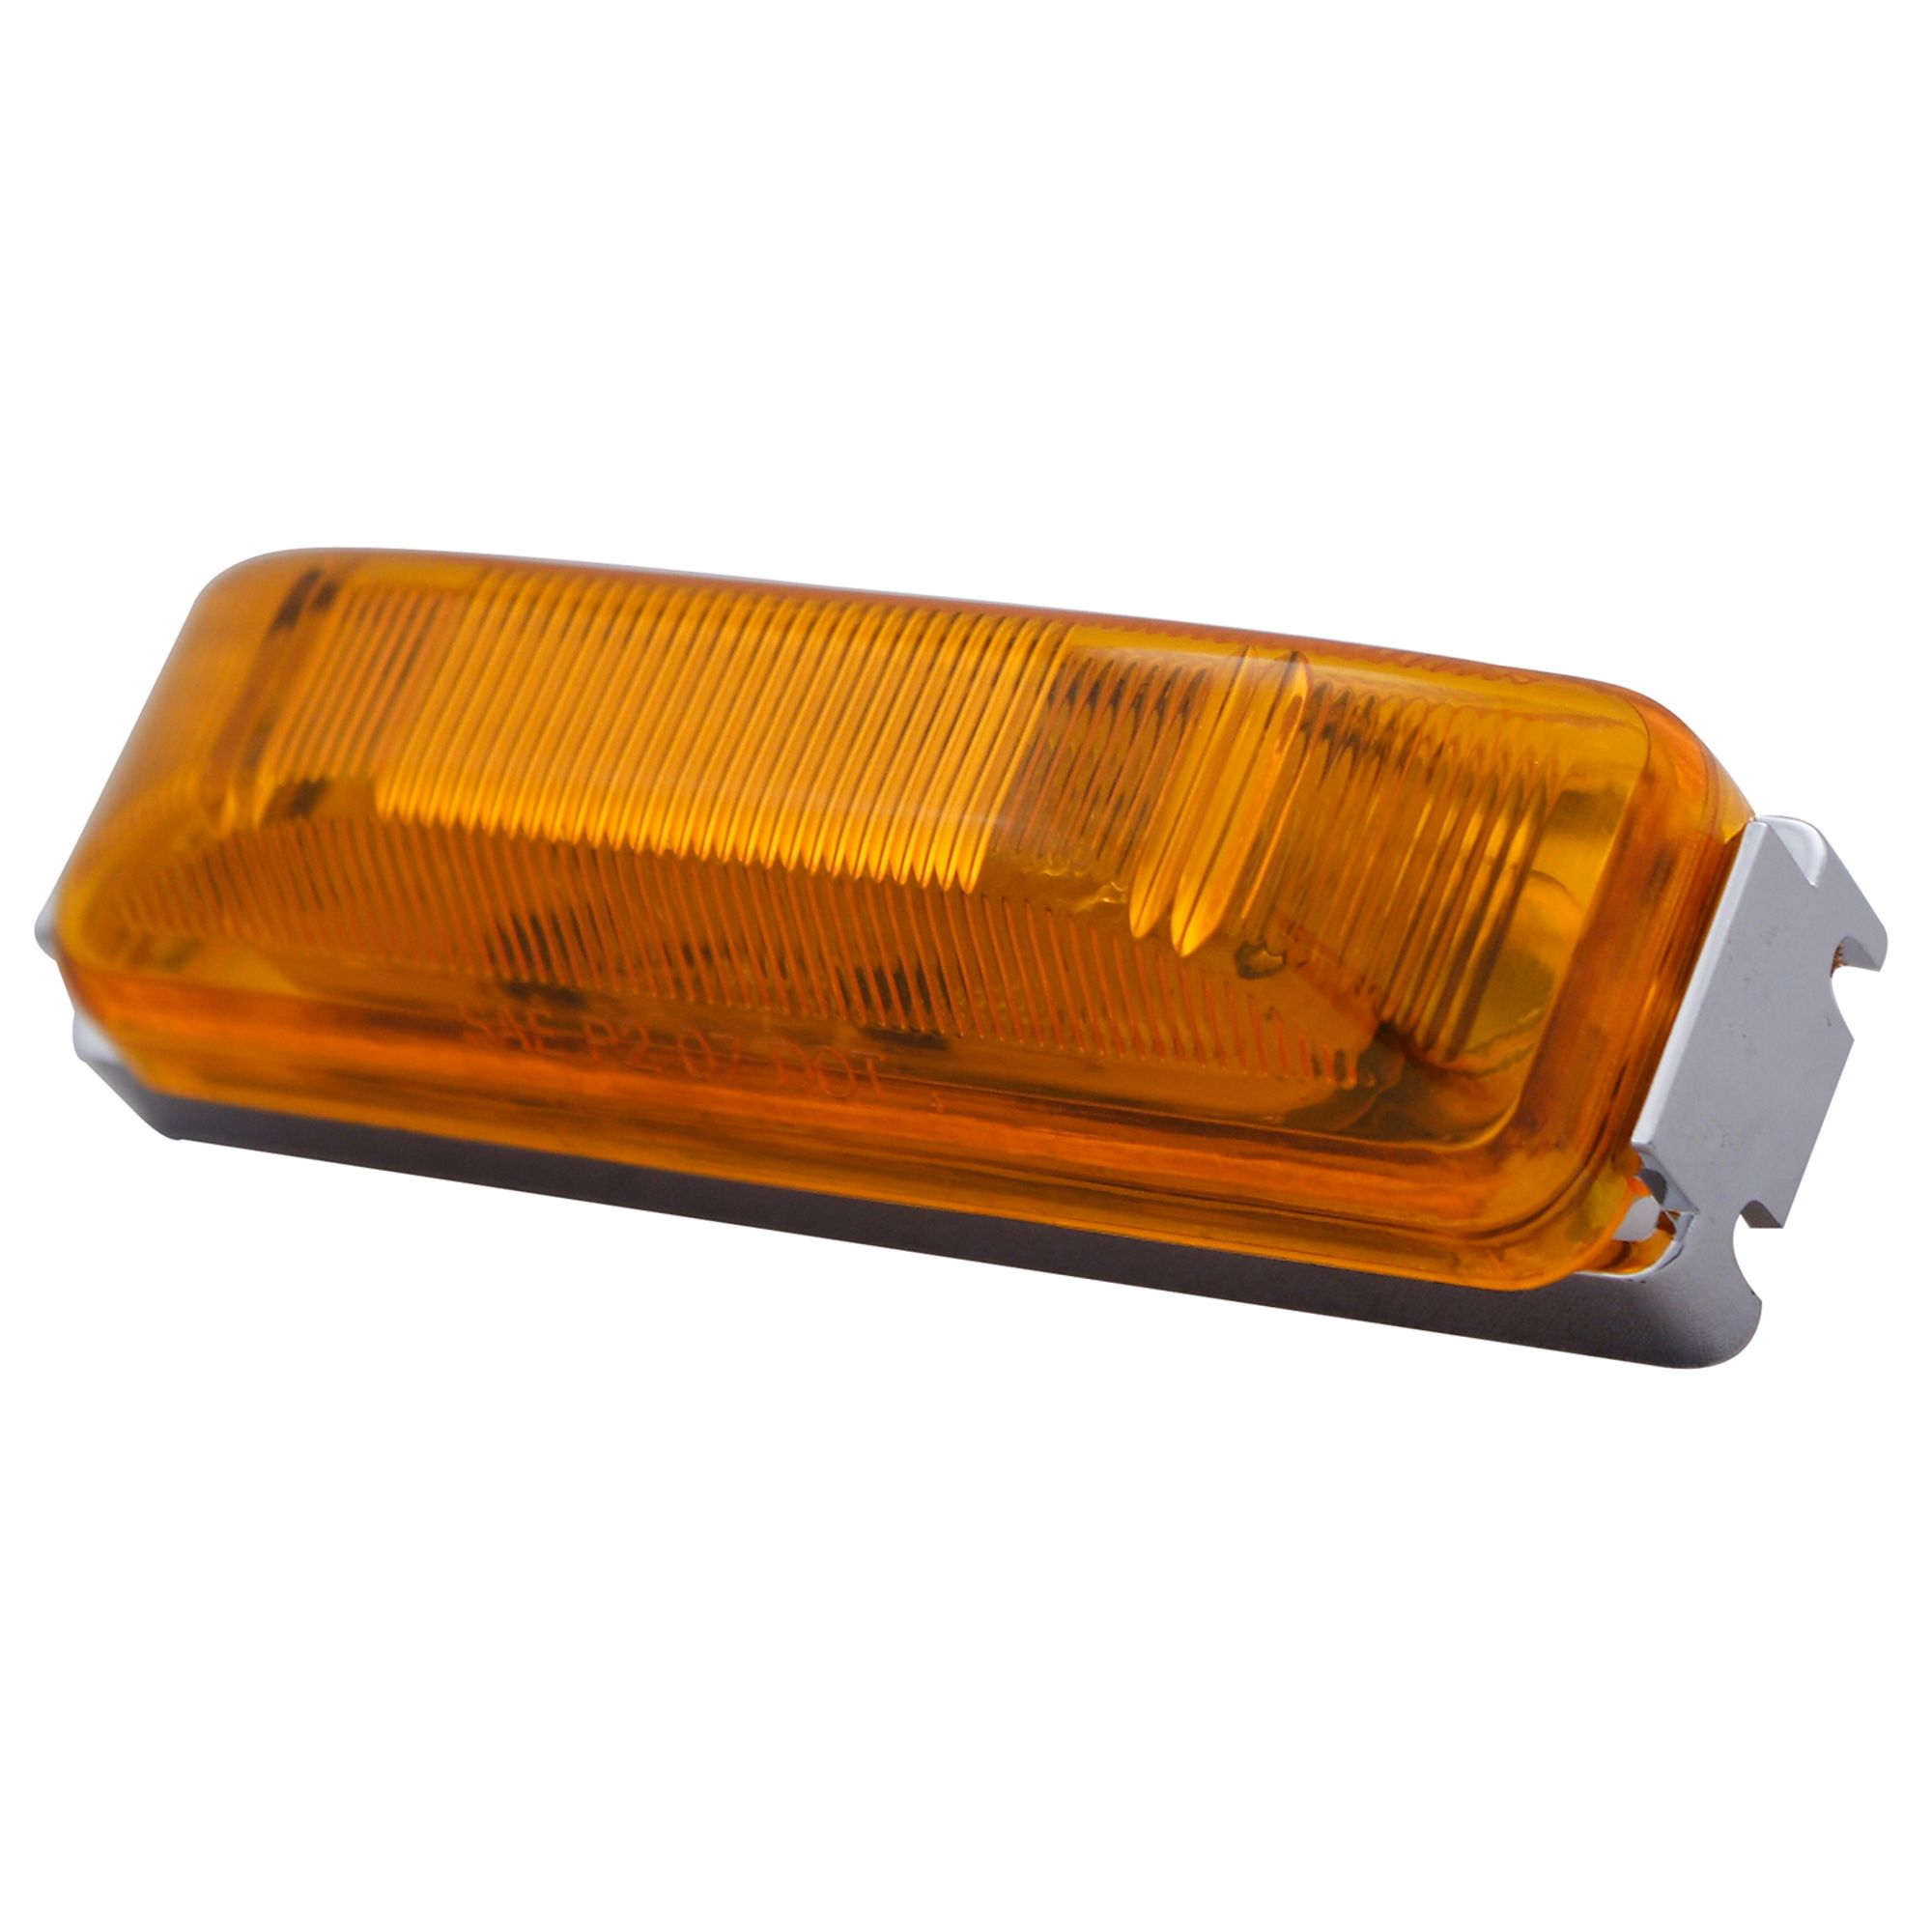 Pilot Automotive NV-5055A 12 Volt 4 inch Side Marker / Reflector Light-Amber Size: 4 x 1-3/16 x 1-1/4